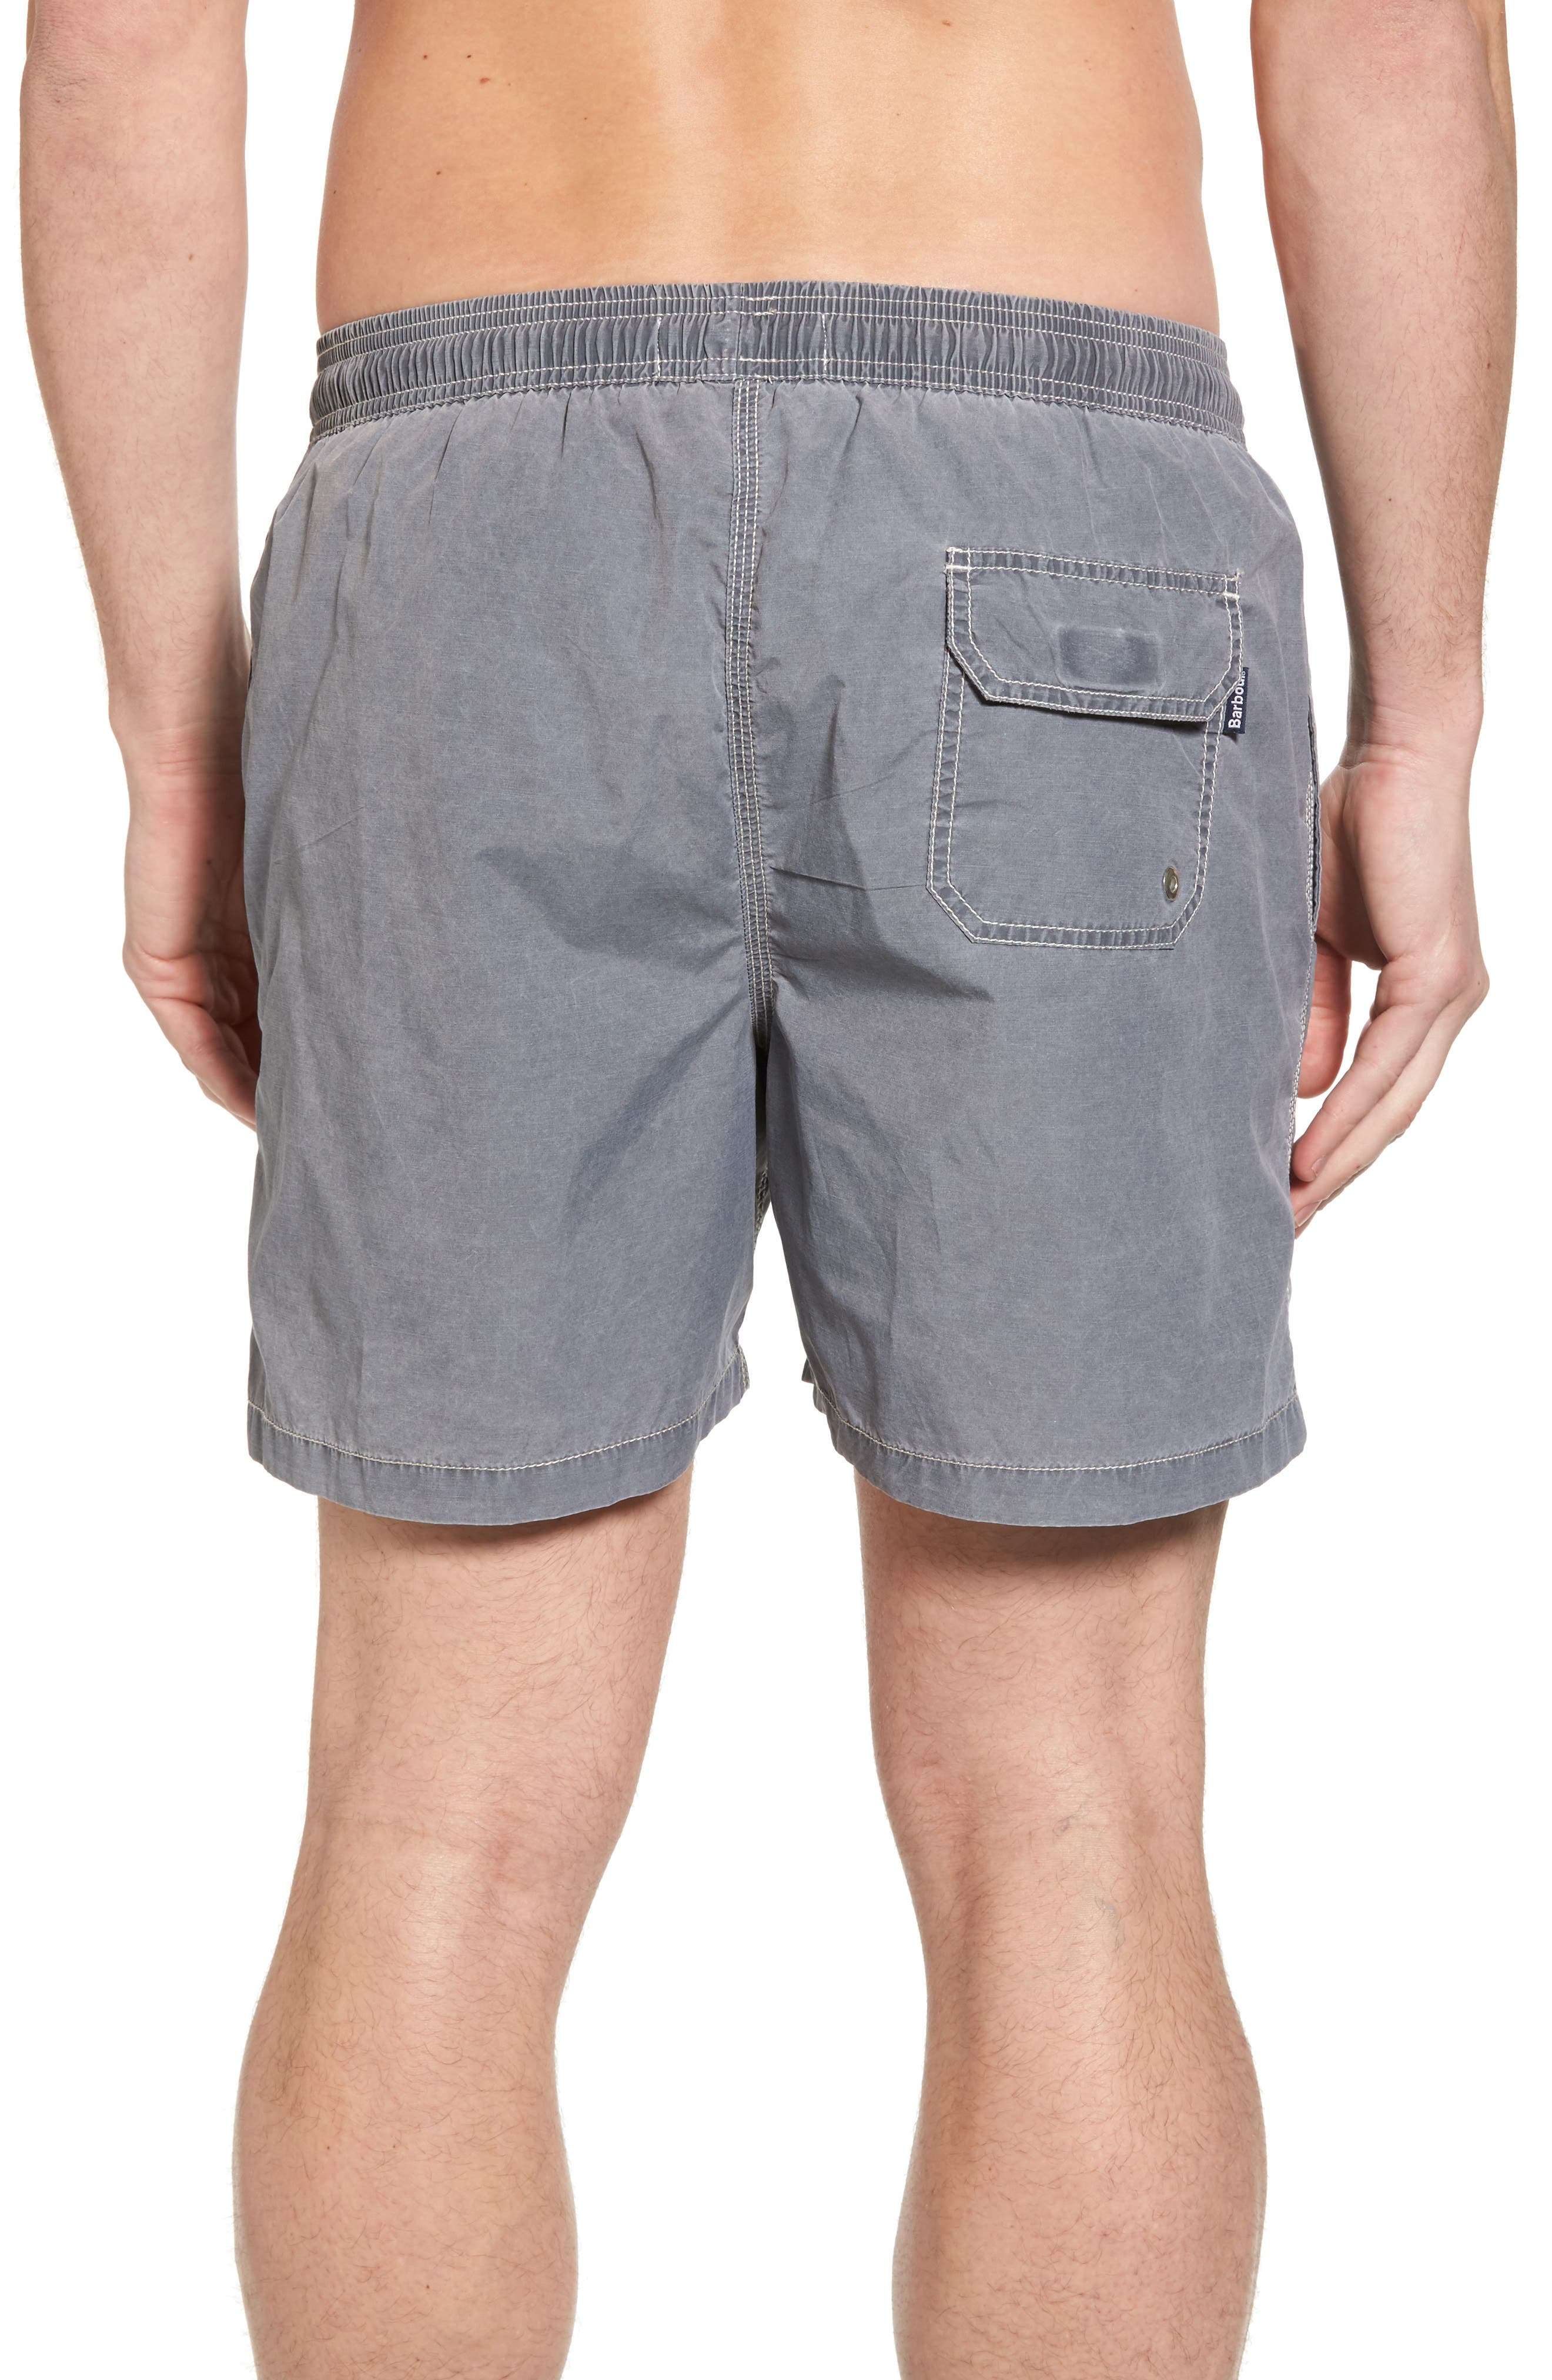 Victor Swim Trunks,                             Alternate thumbnail 2, color,                             021